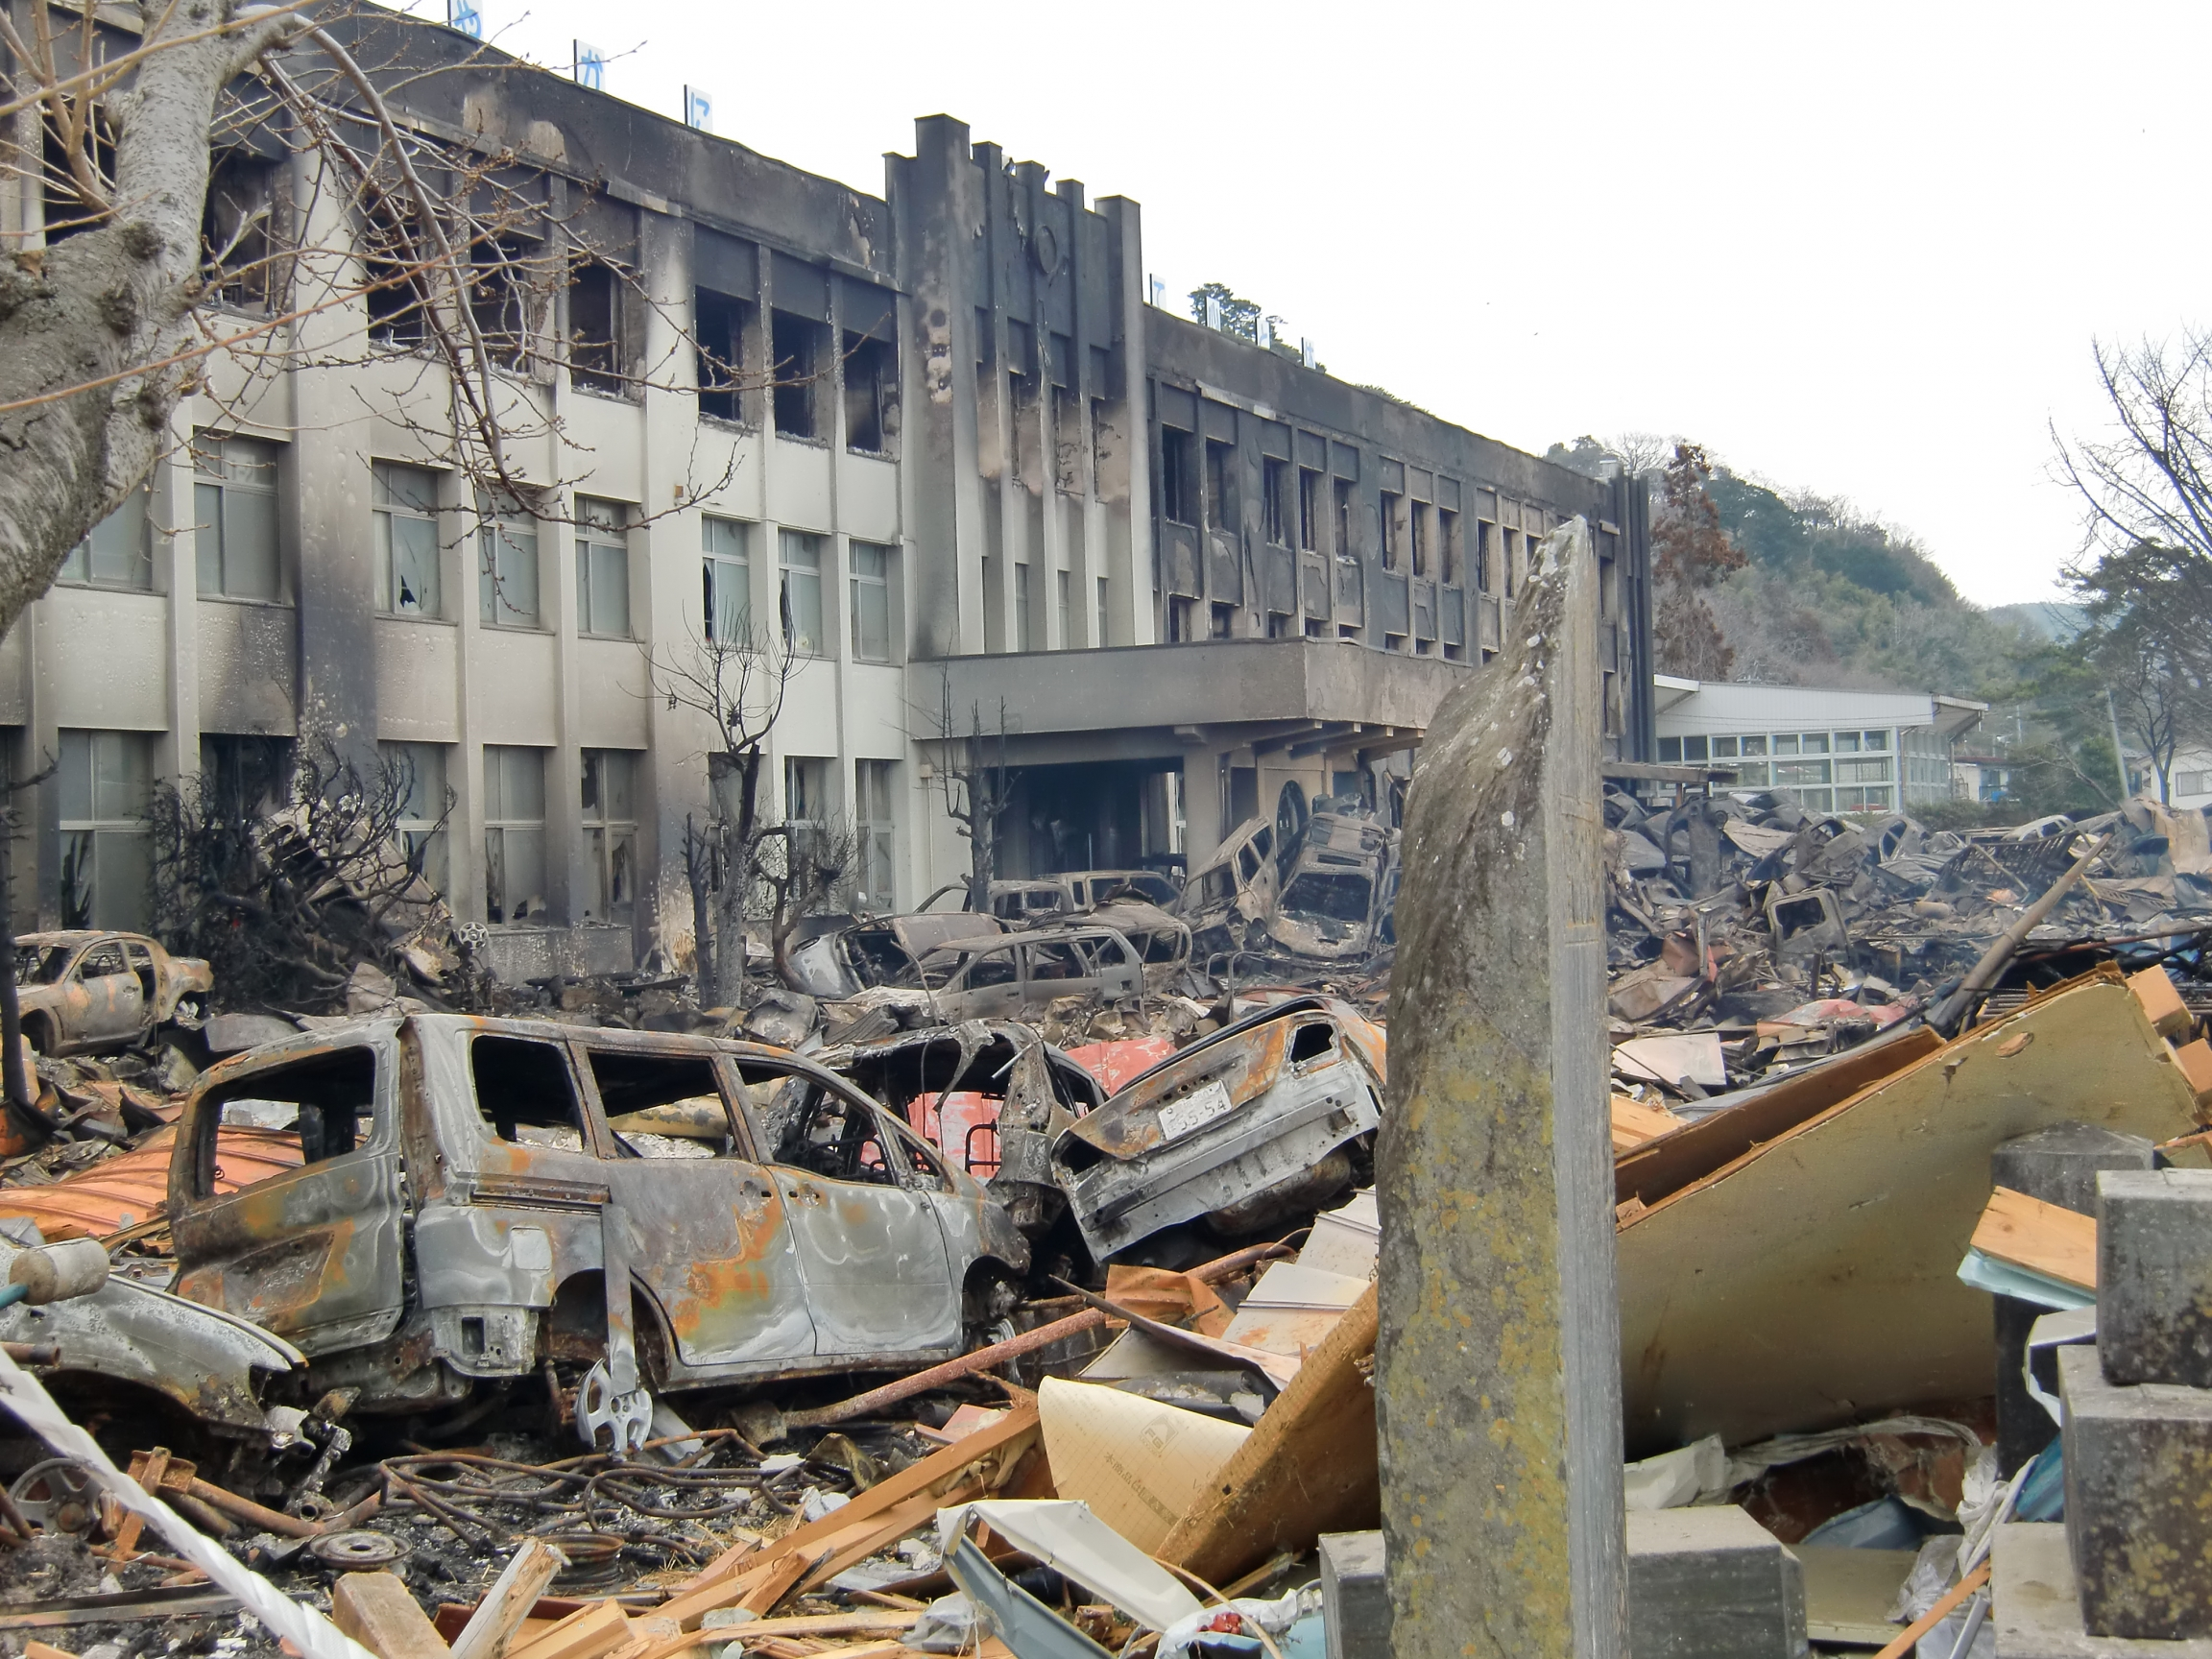 A school is shown completely burned out with no windows.